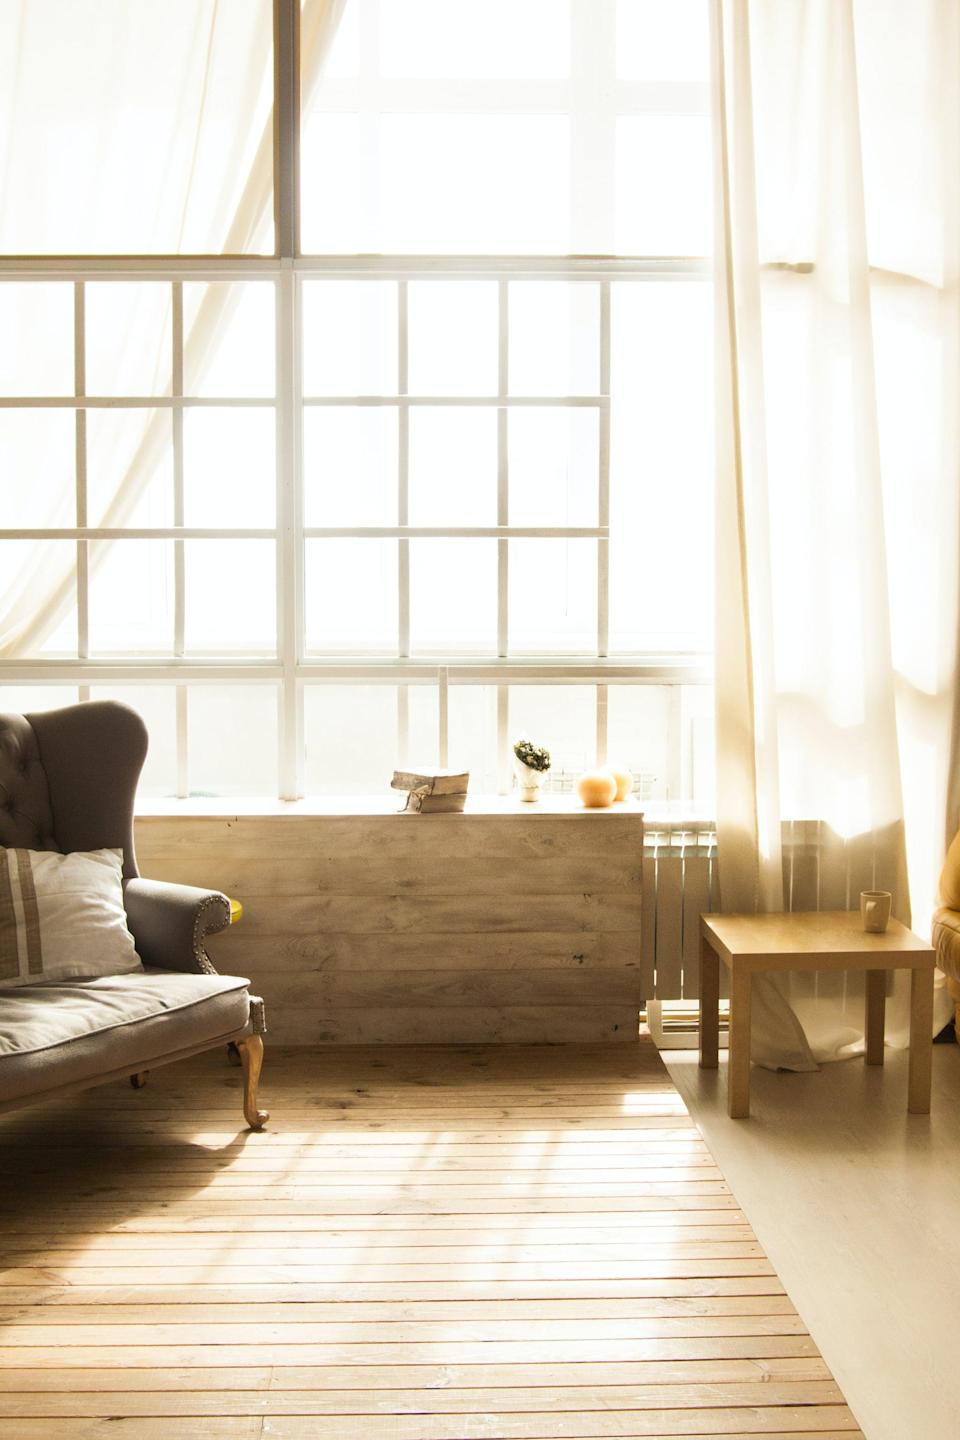 """<p>To make your space even more calming, open the window and let a little natural light in. Natural light can also help <a href=""""https://www.popsugar.com/fitness/how-to-manage-seasonal-depression-in-college-47154195"""" class=""""link rapid-noclick-resp"""" rel=""""nofollow noopener"""" target=""""_blank"""" data-ylk=""""slk:combat seasonal depression"""">combat seasonal depression</a> in the fall and winter.</p>"""